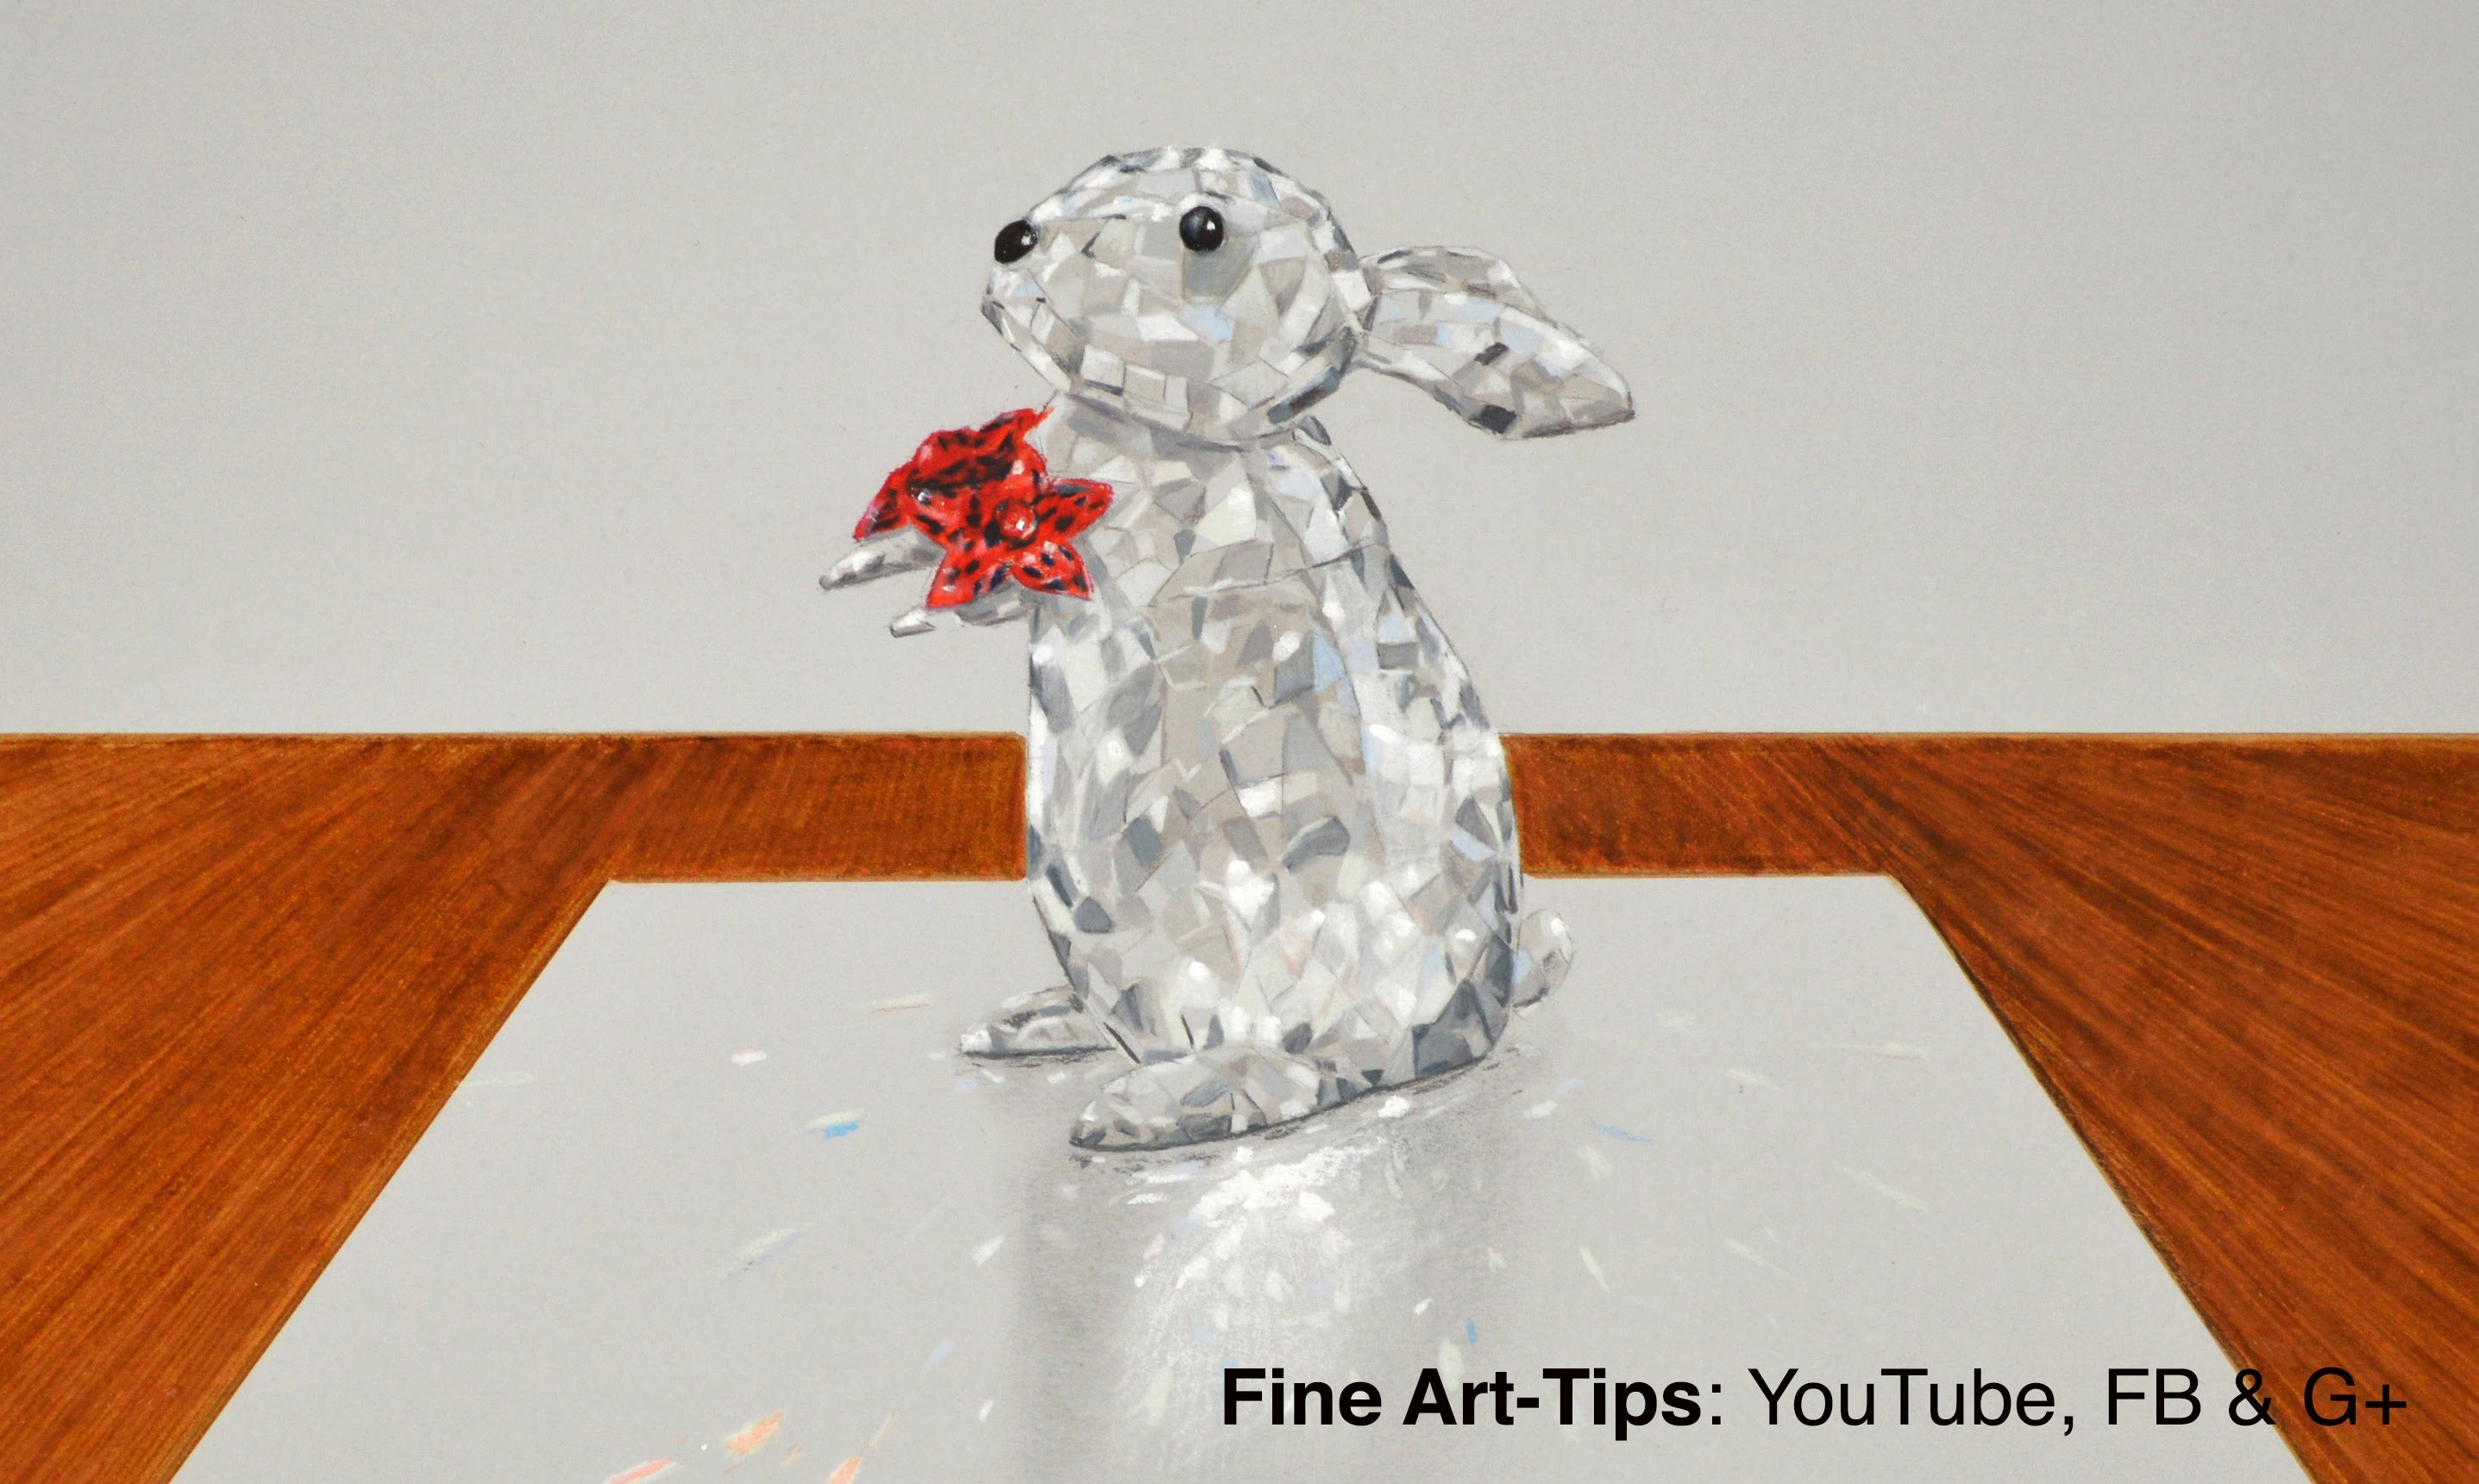 How to Draw a Crystal Rabbit, Swarovski Style - With a 3D Effect